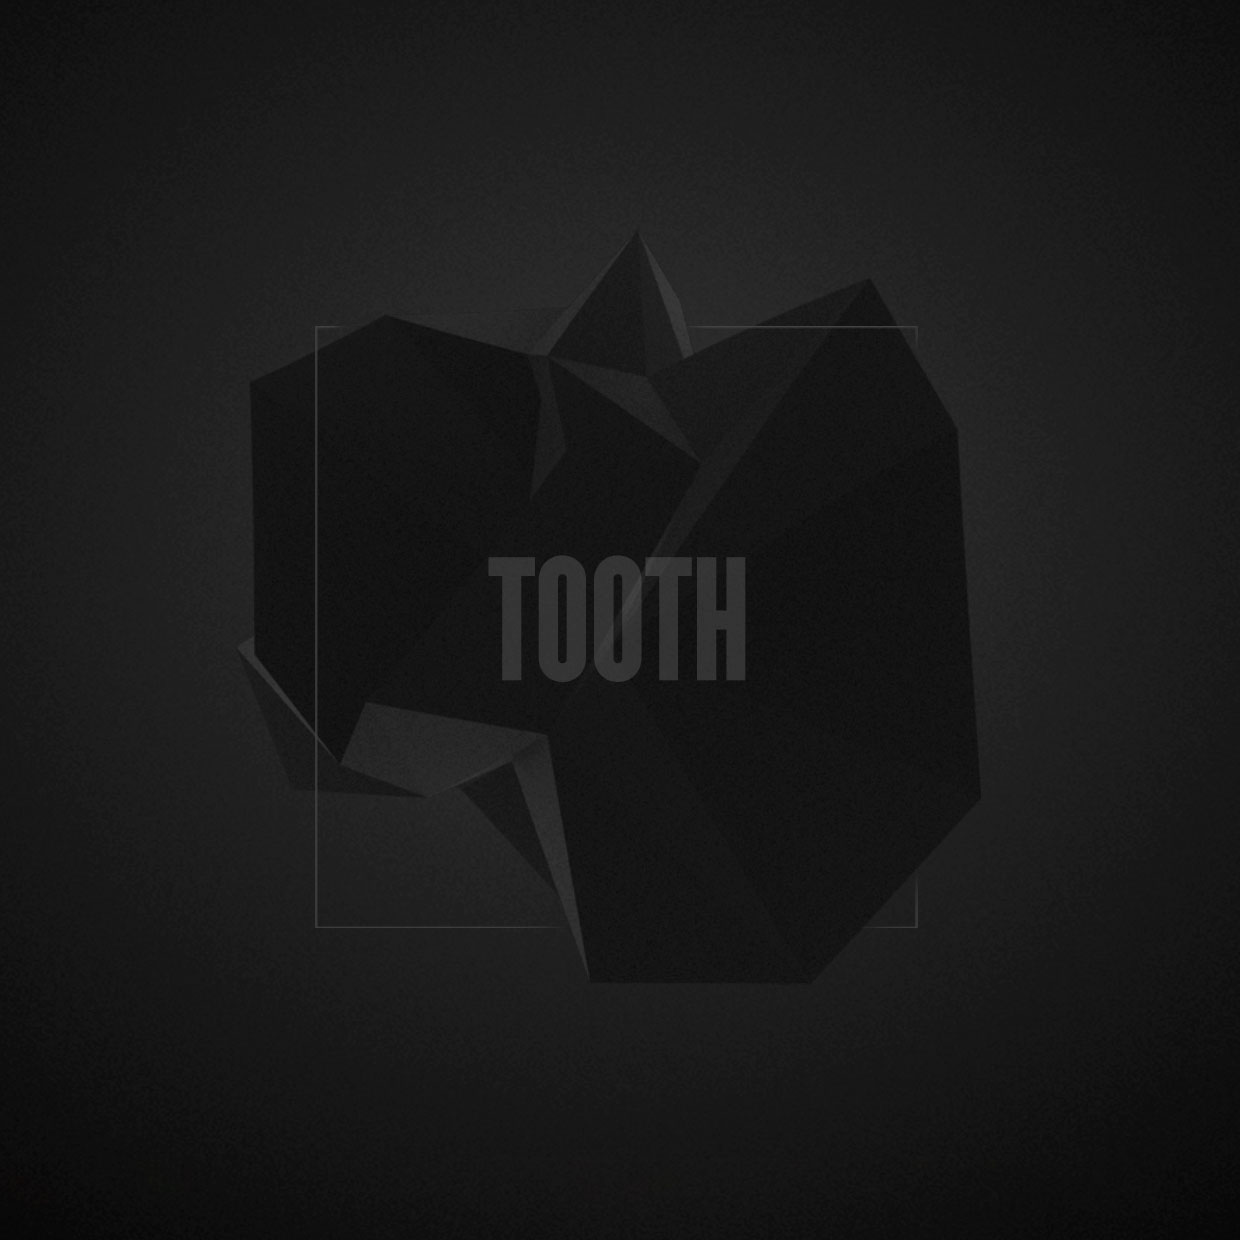 Hodo_Tooth_1